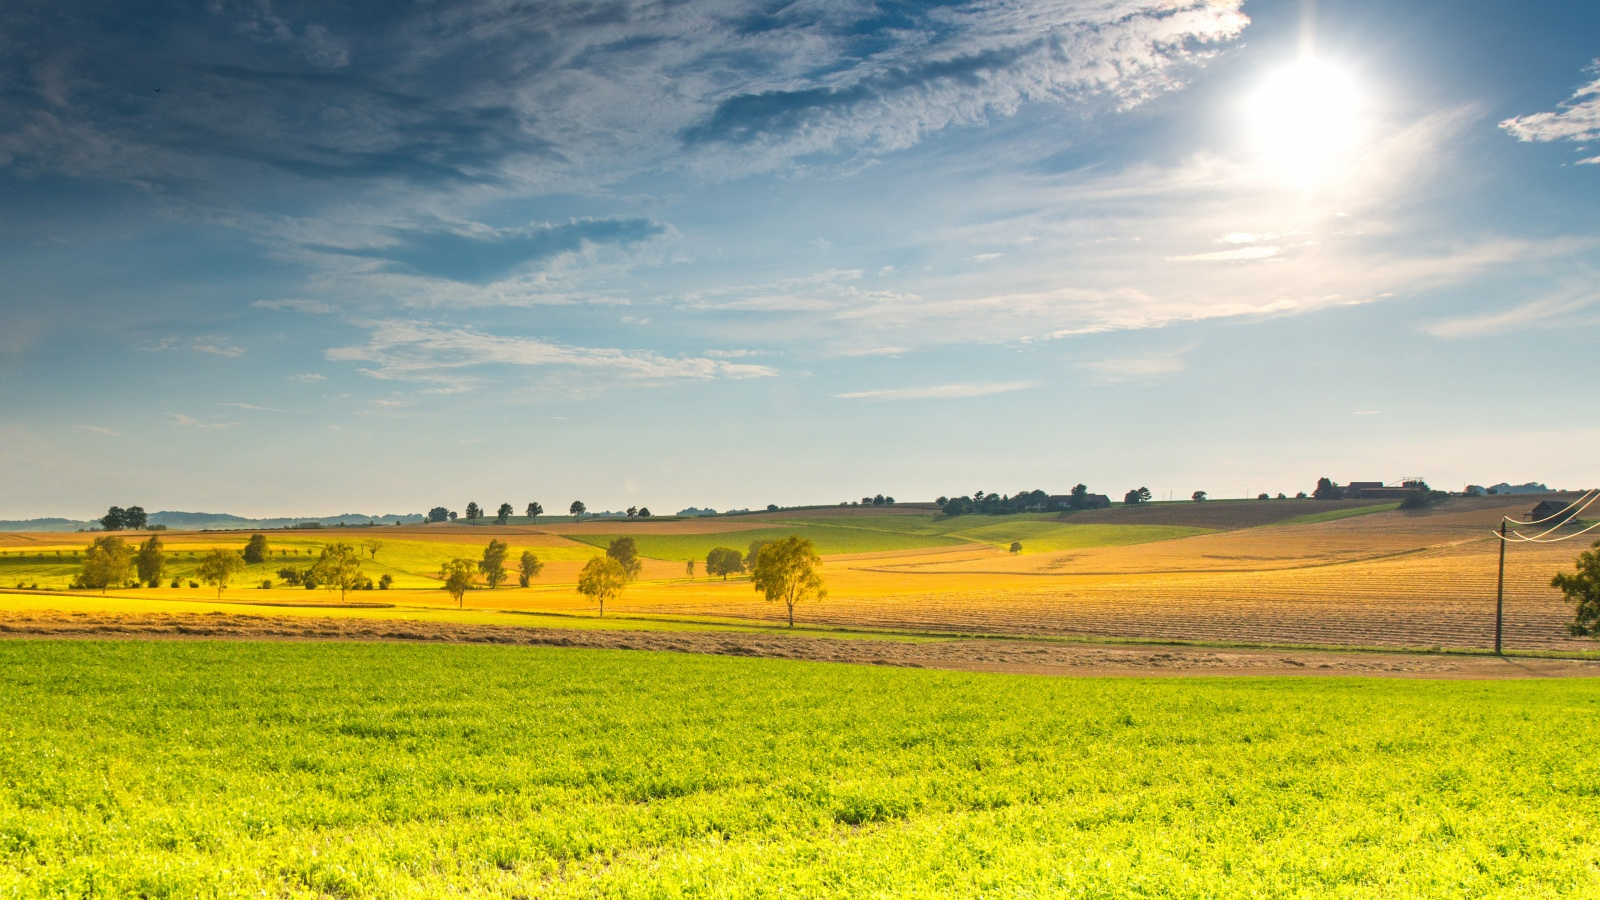 Animated Fall Wallpaper Spring Sunny Landscape Wallpapers In Jpg Format For Free